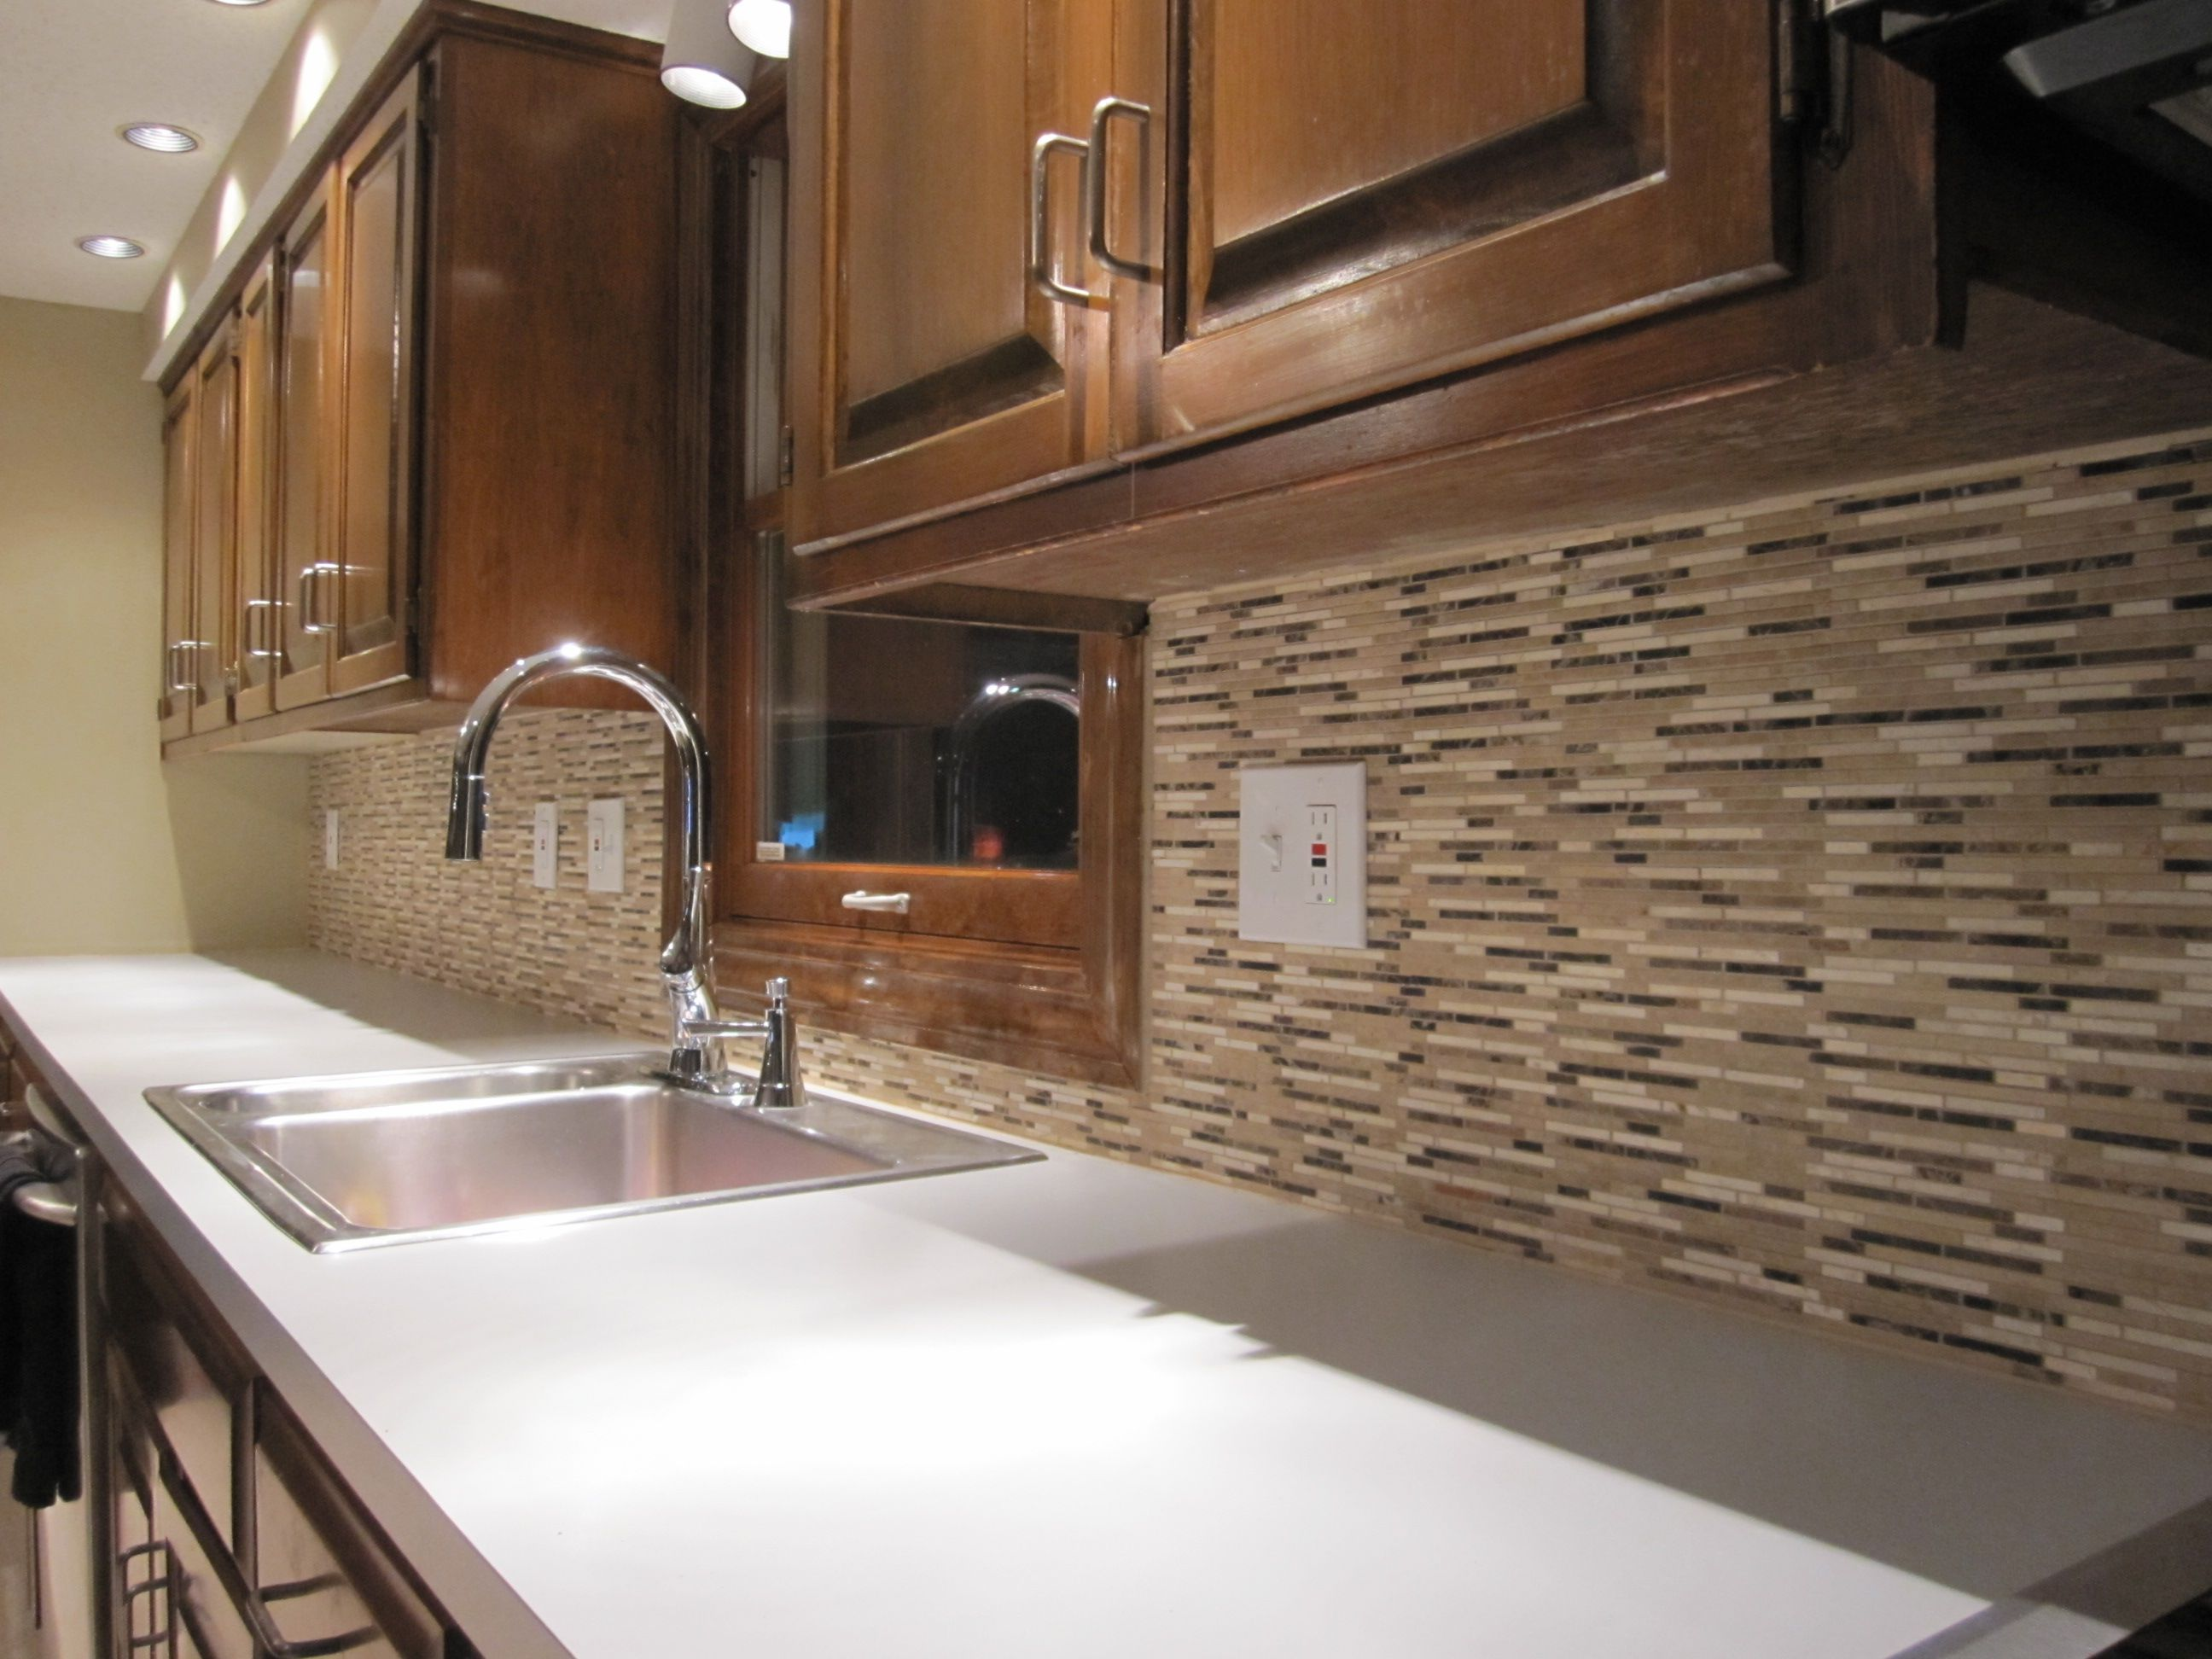 tiles for kitchen back splash: a solution for natural and clean